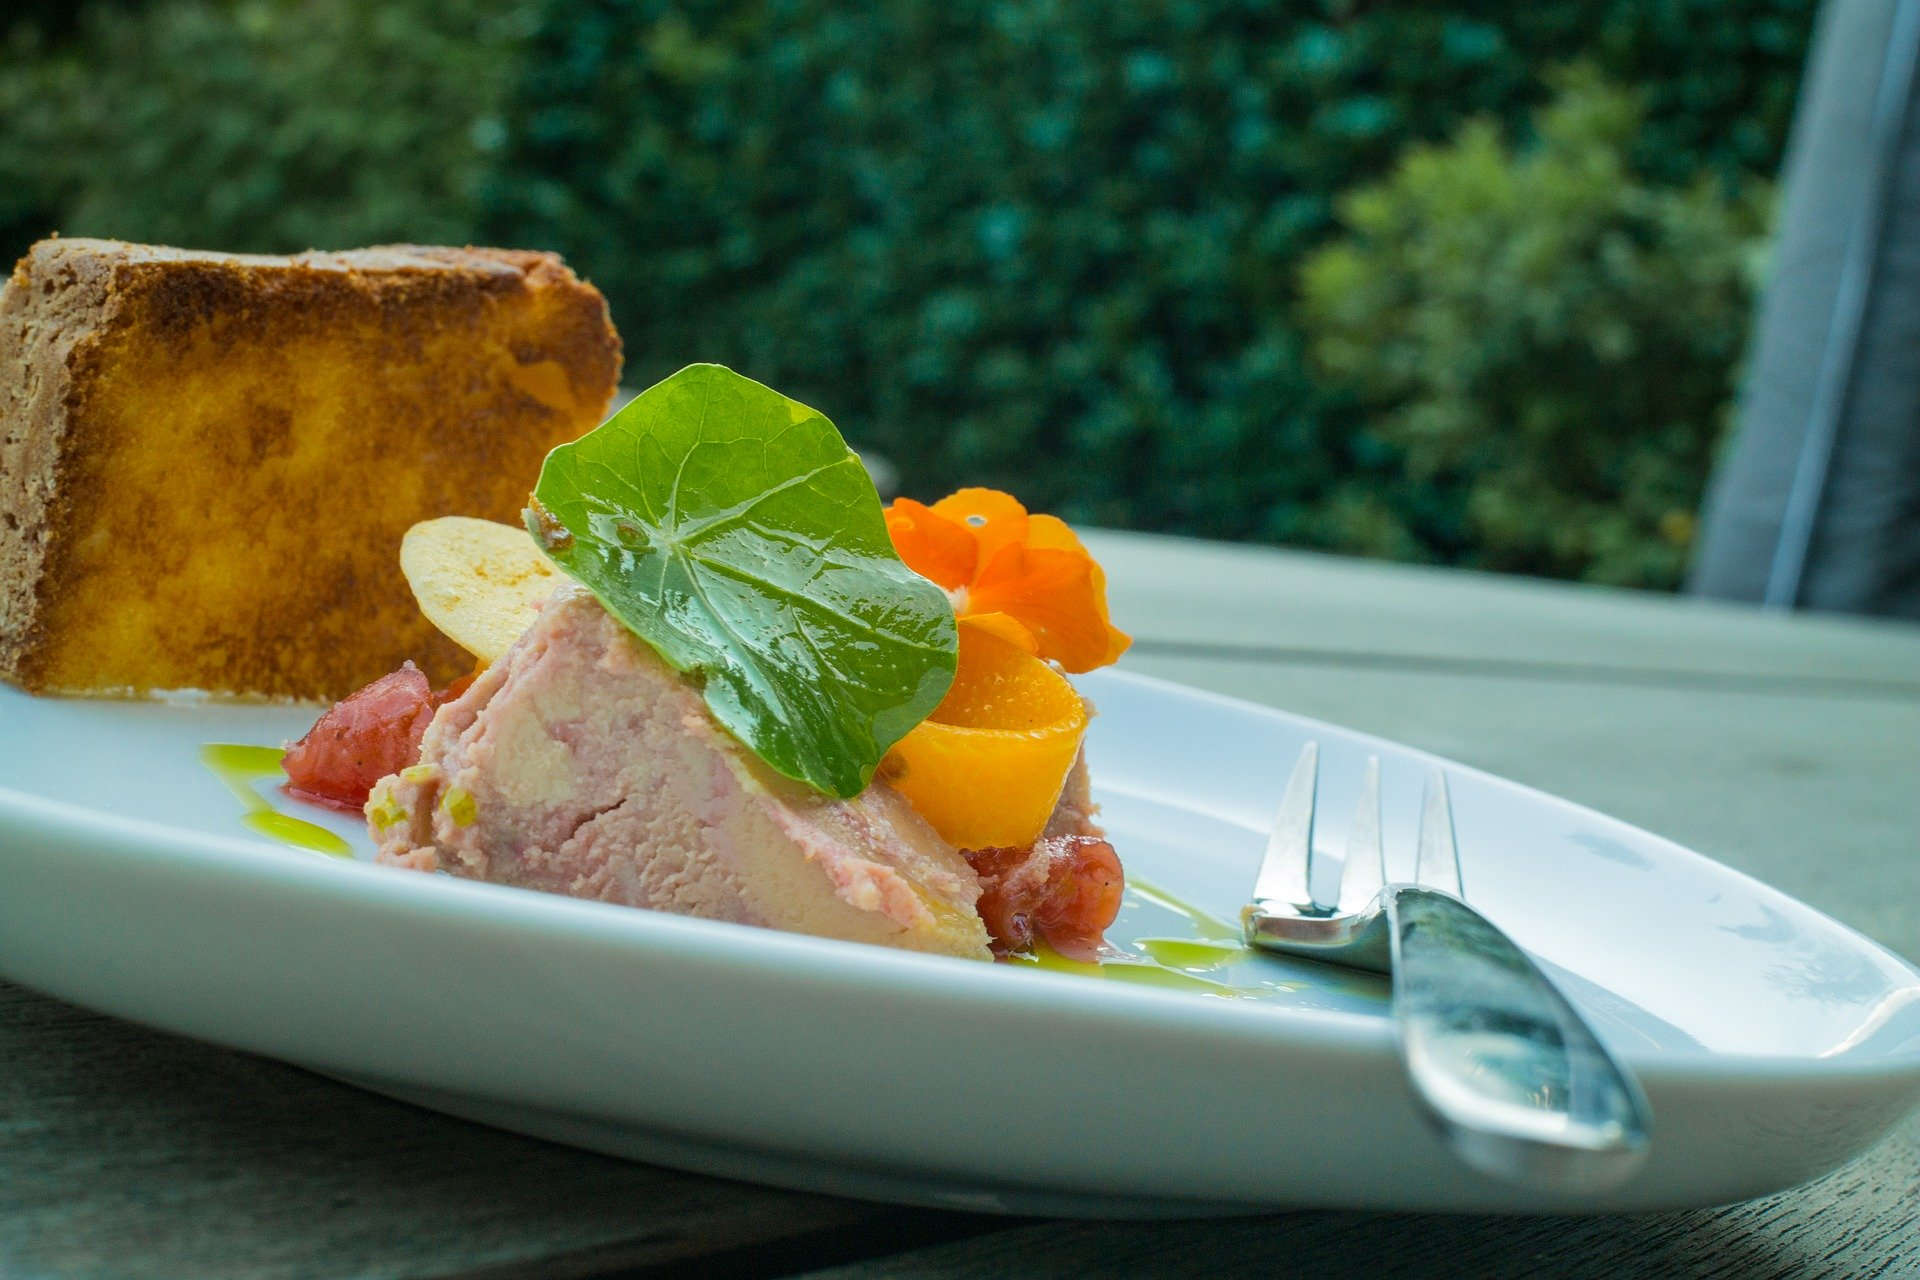 duck-liver-2257831_1920